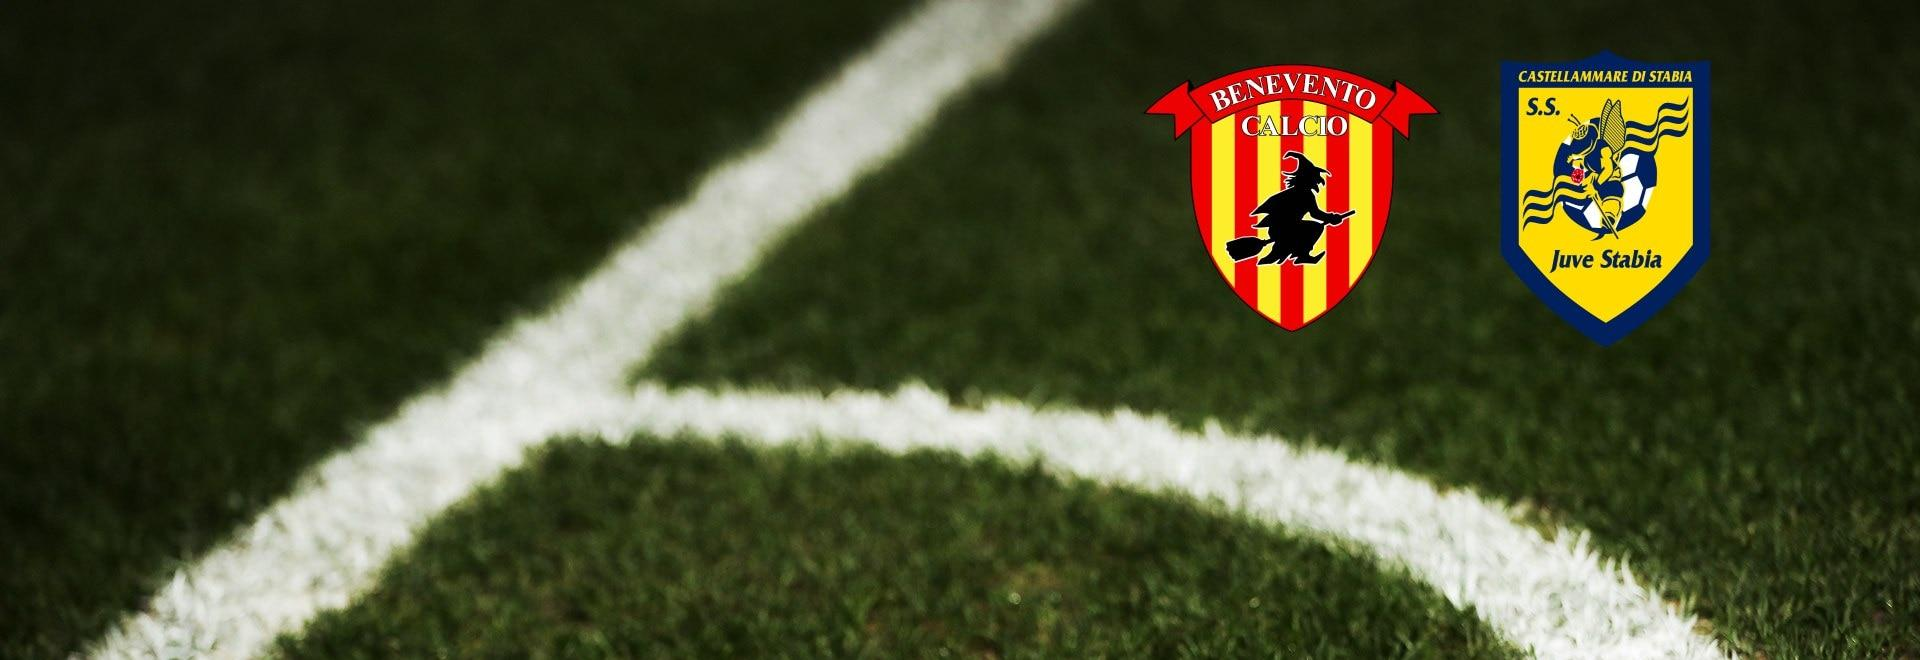 Benevento - Juve Stabia. 31a g.